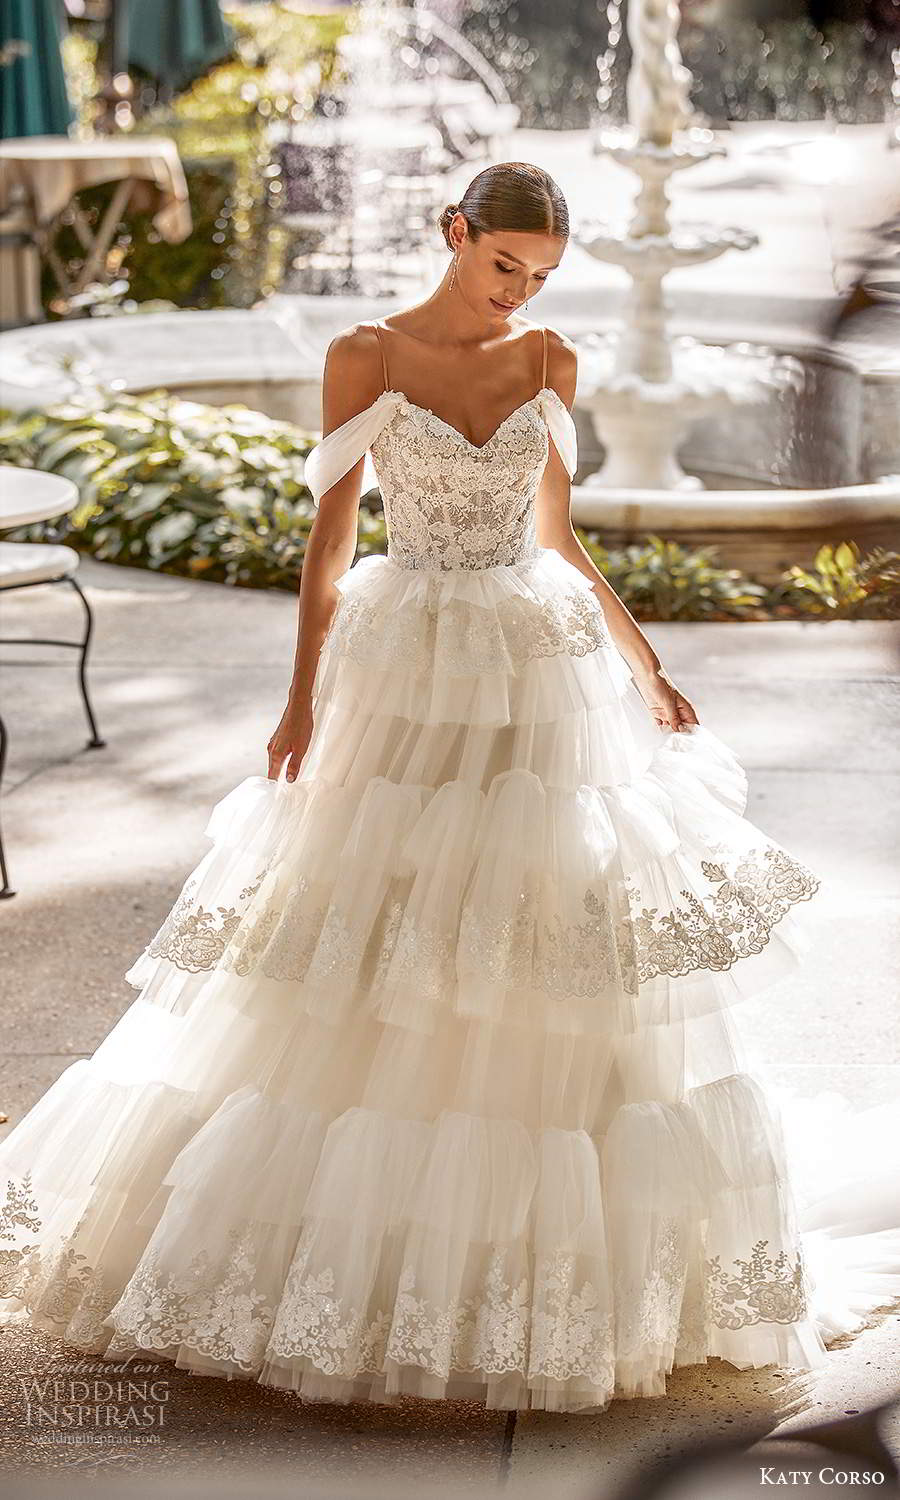 katy corso 2021 bridal off shoulder swag sleeves thin straps sweetheart neckline a line ball gown wedding dress tiered skirt chapel train (4) mv